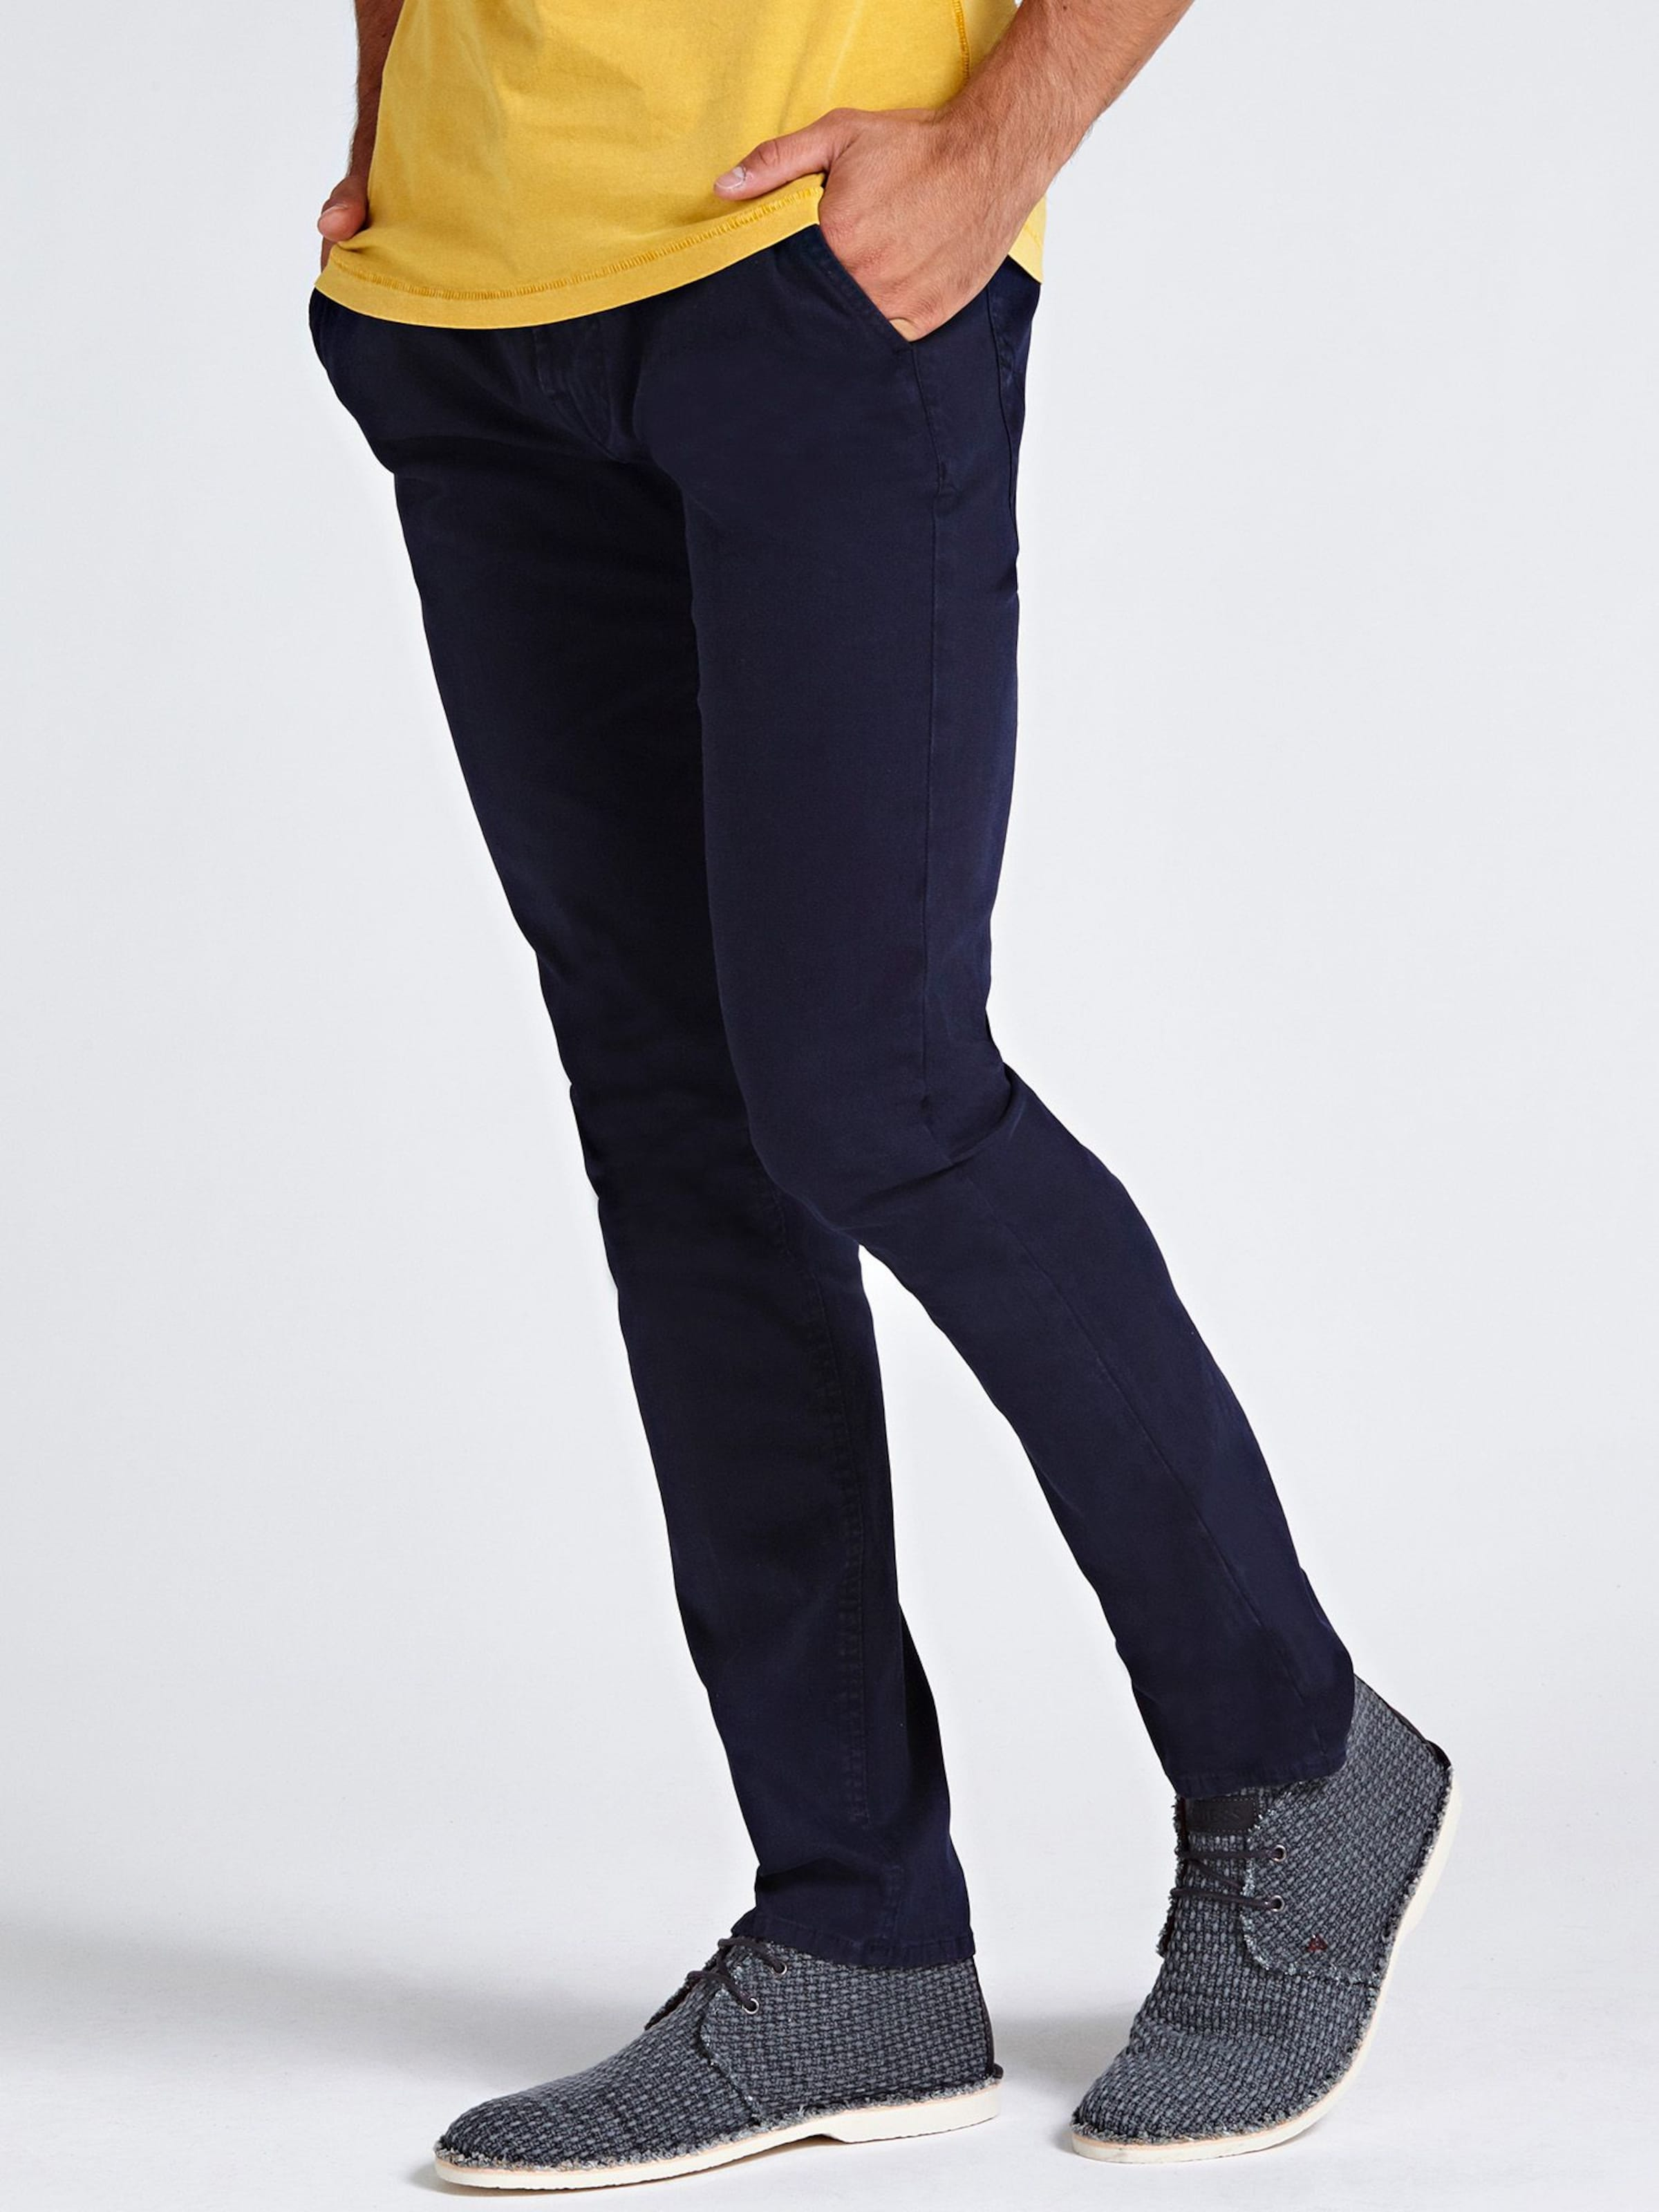 In Guess Hose Guess 'skinny' Navy 'skinny' Hose In Guess Navy thrCxQdBs